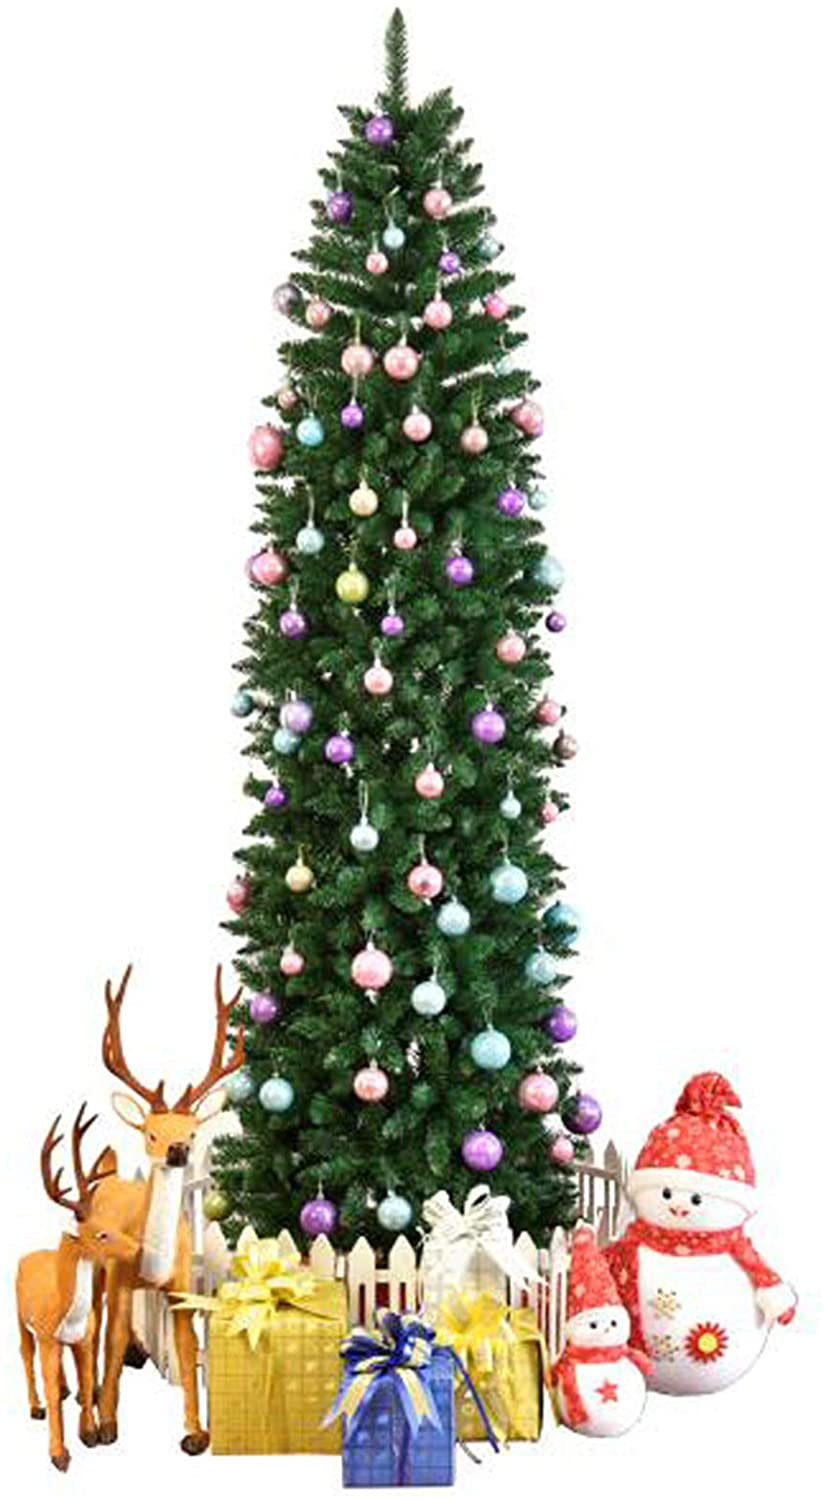 CUSGIF 7.5ft Pointed PVC Pen Holder Christmas Tree, Artificial Christmas Tree with Metal Stand for Christmas Decoration, Unlit